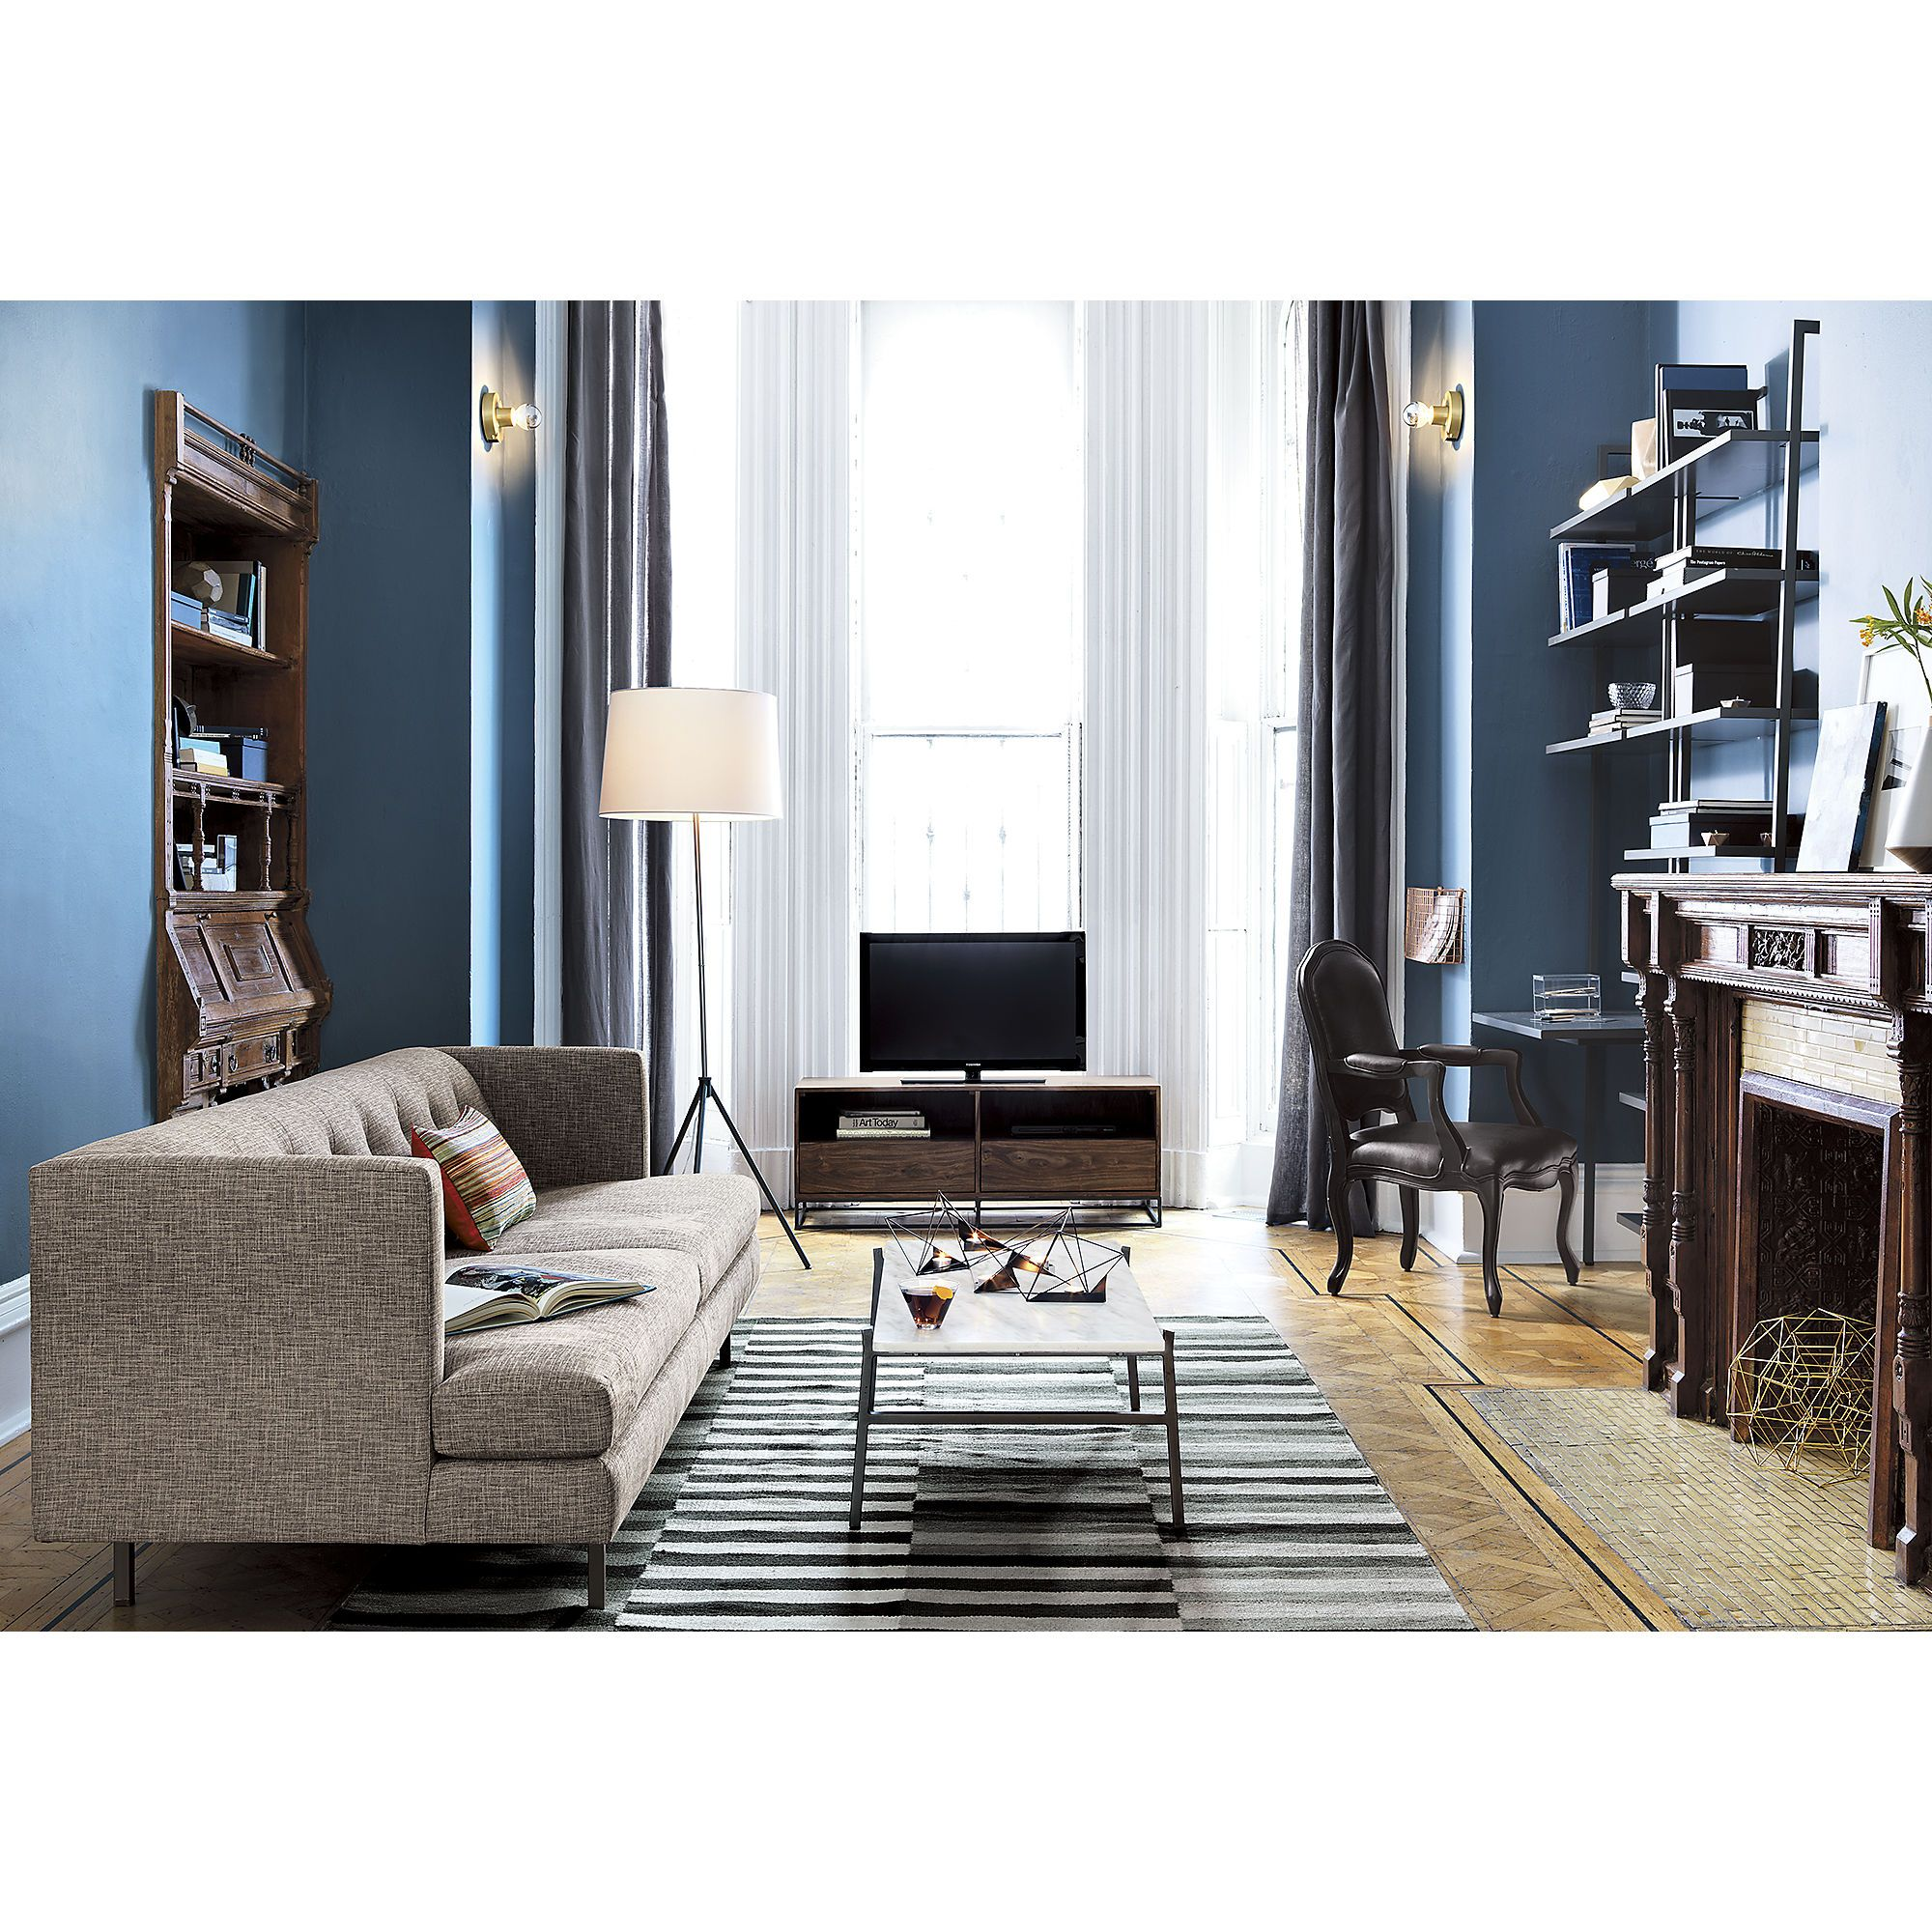 Tv In Front Of Window Perpendicular To Sofa